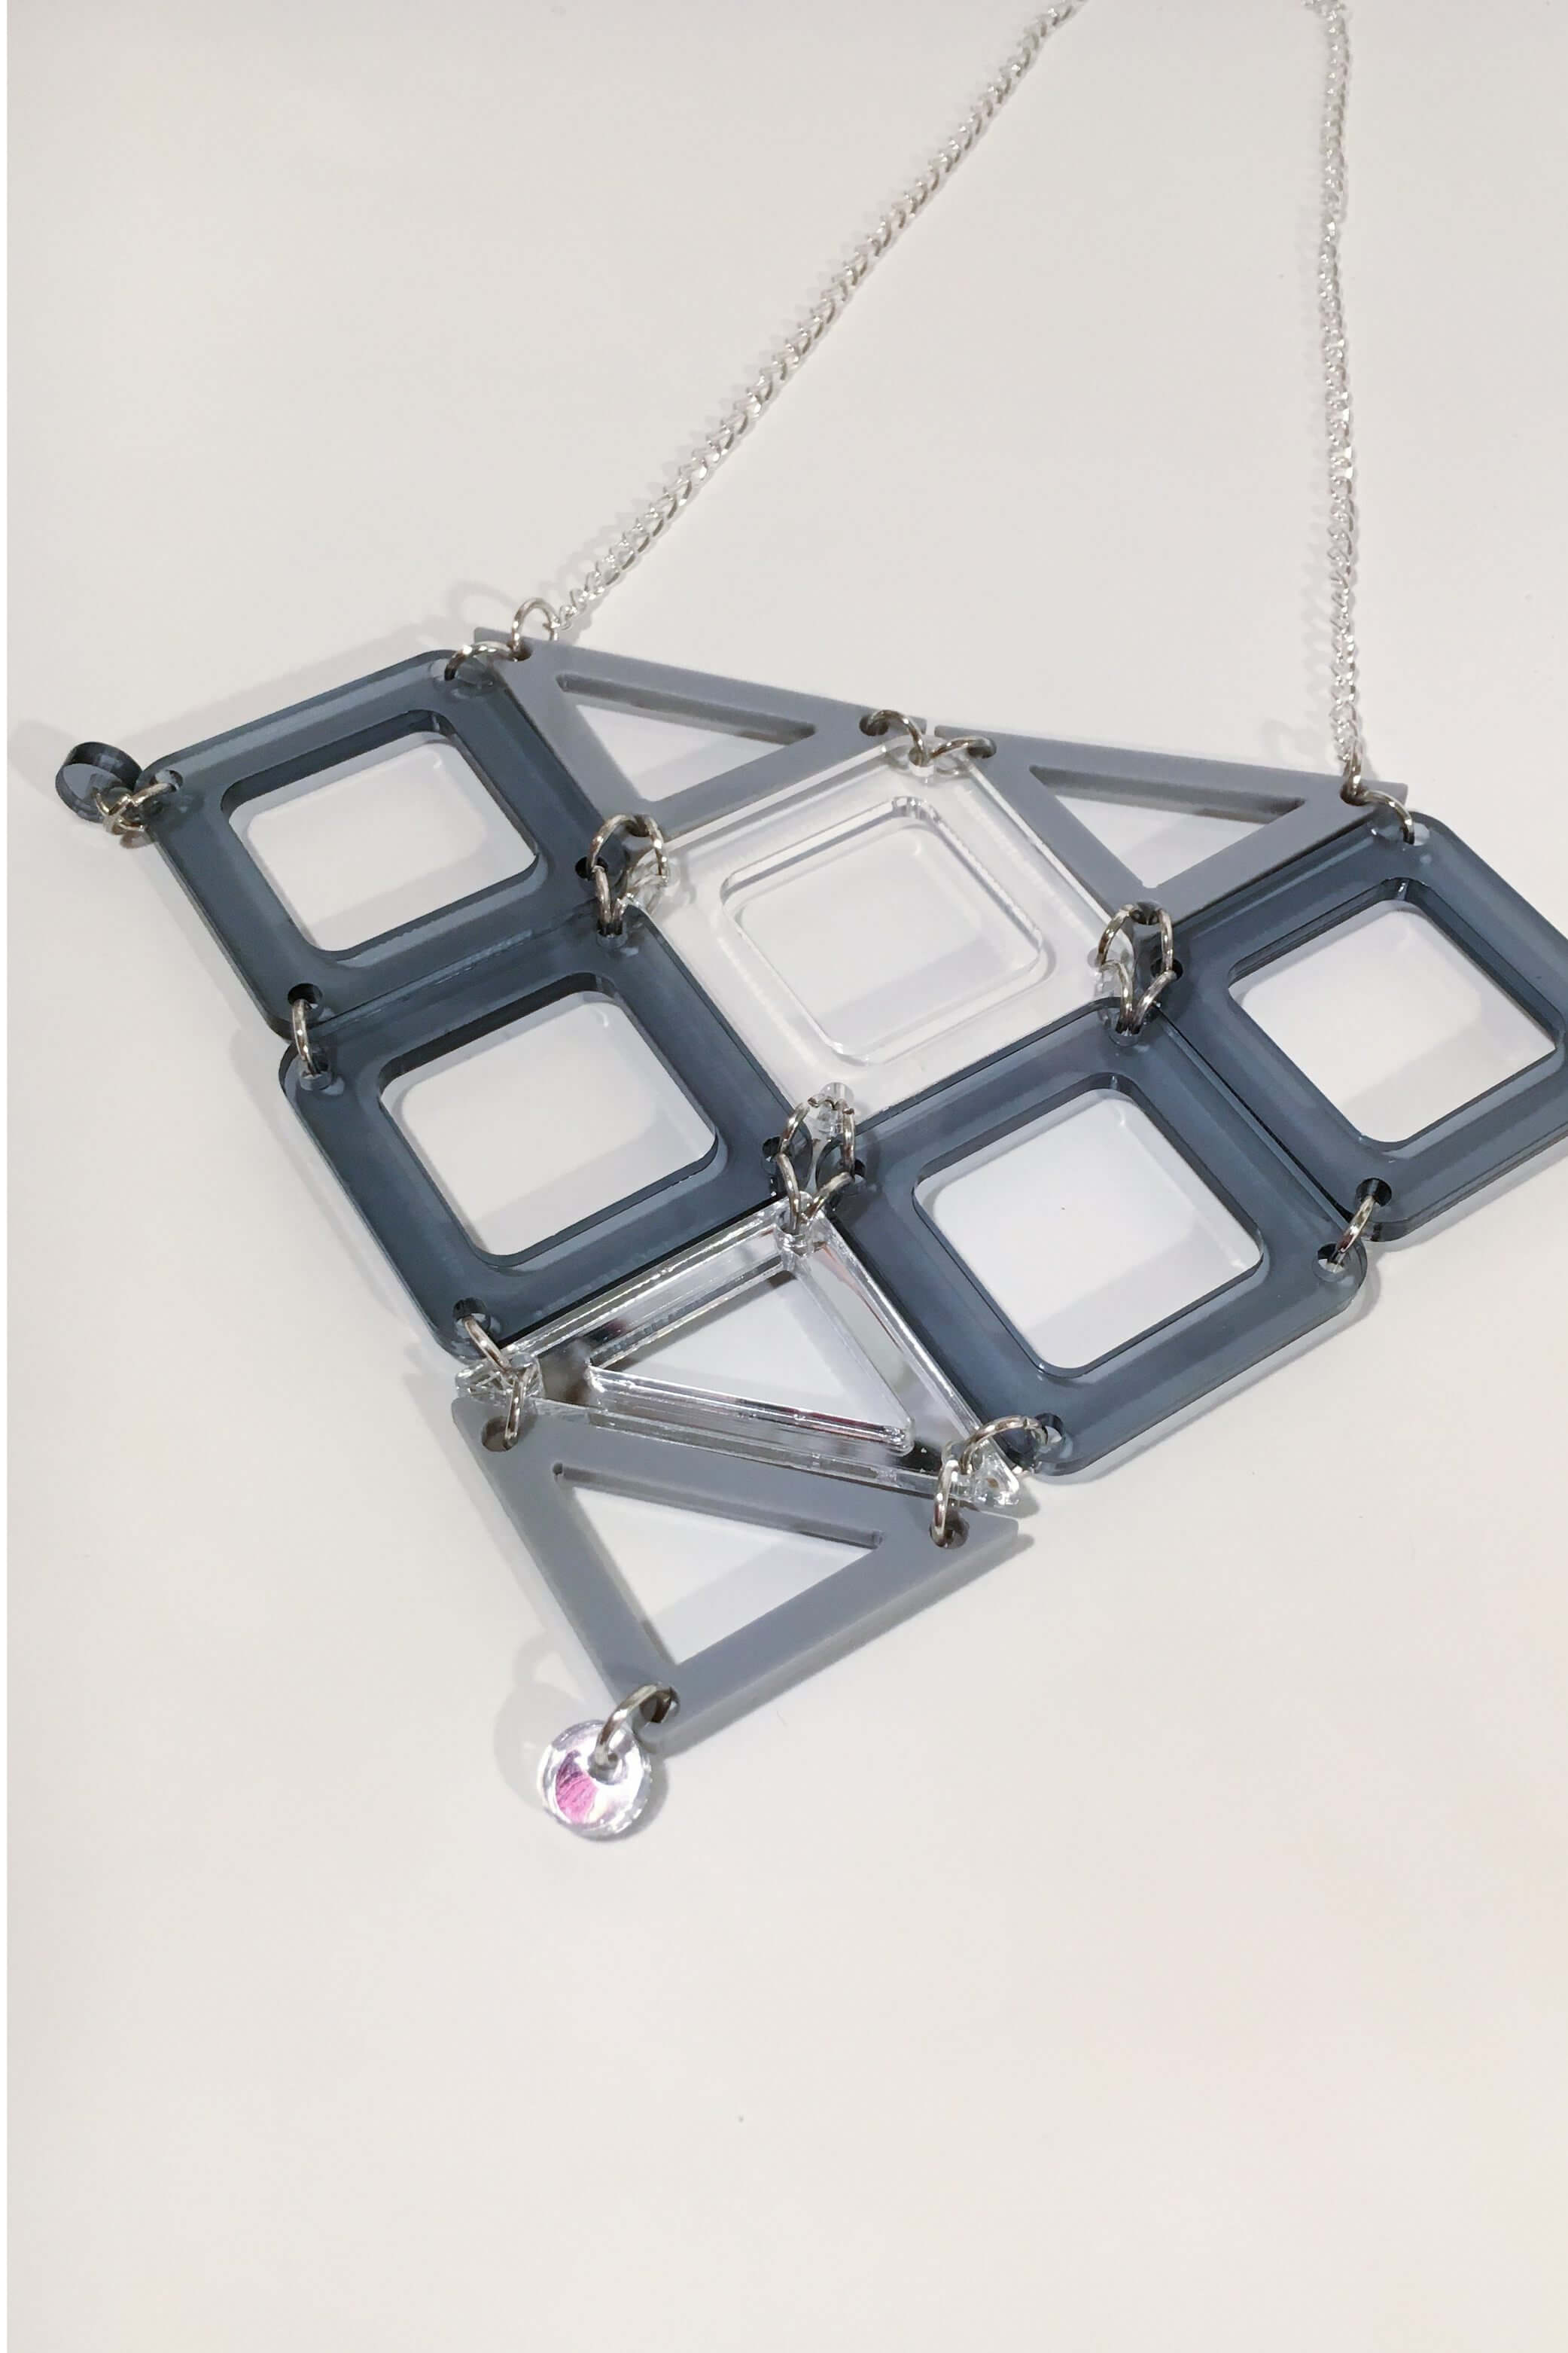 Geometric jewellery design by Odette Smaldon